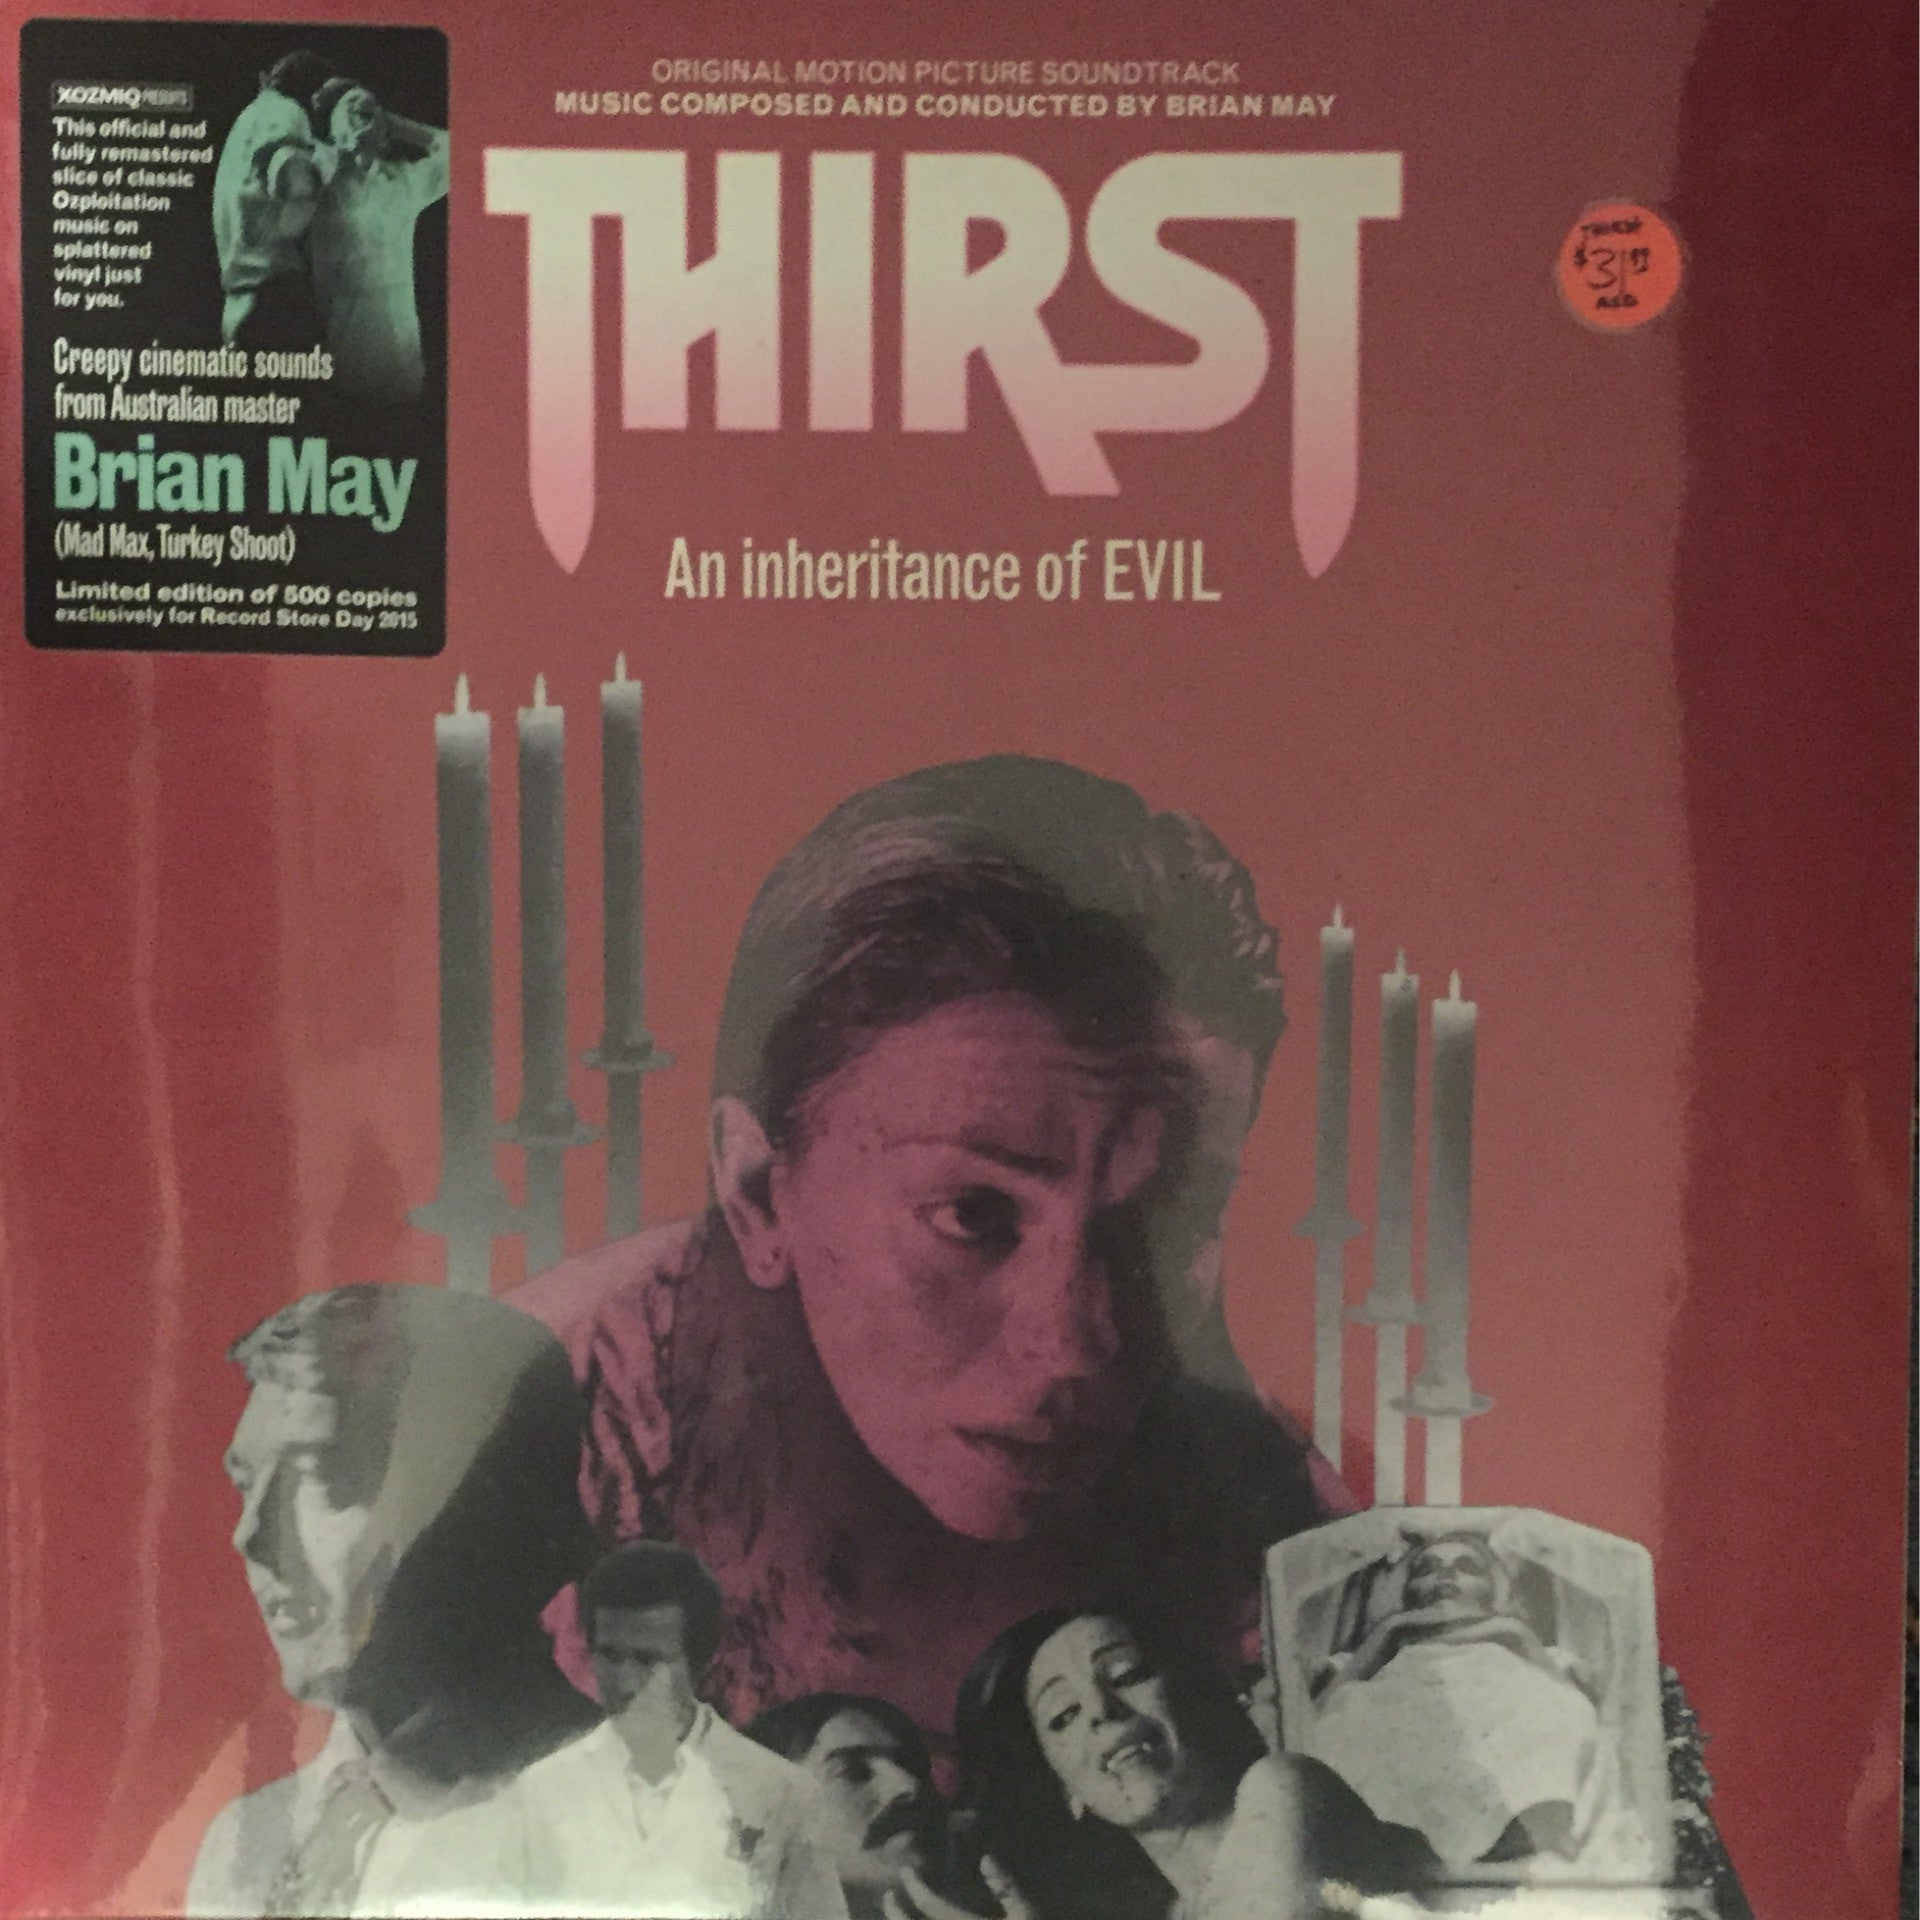 OST - THIRST An Inheritance Of EVIL LP - 500 Copies Pressed!